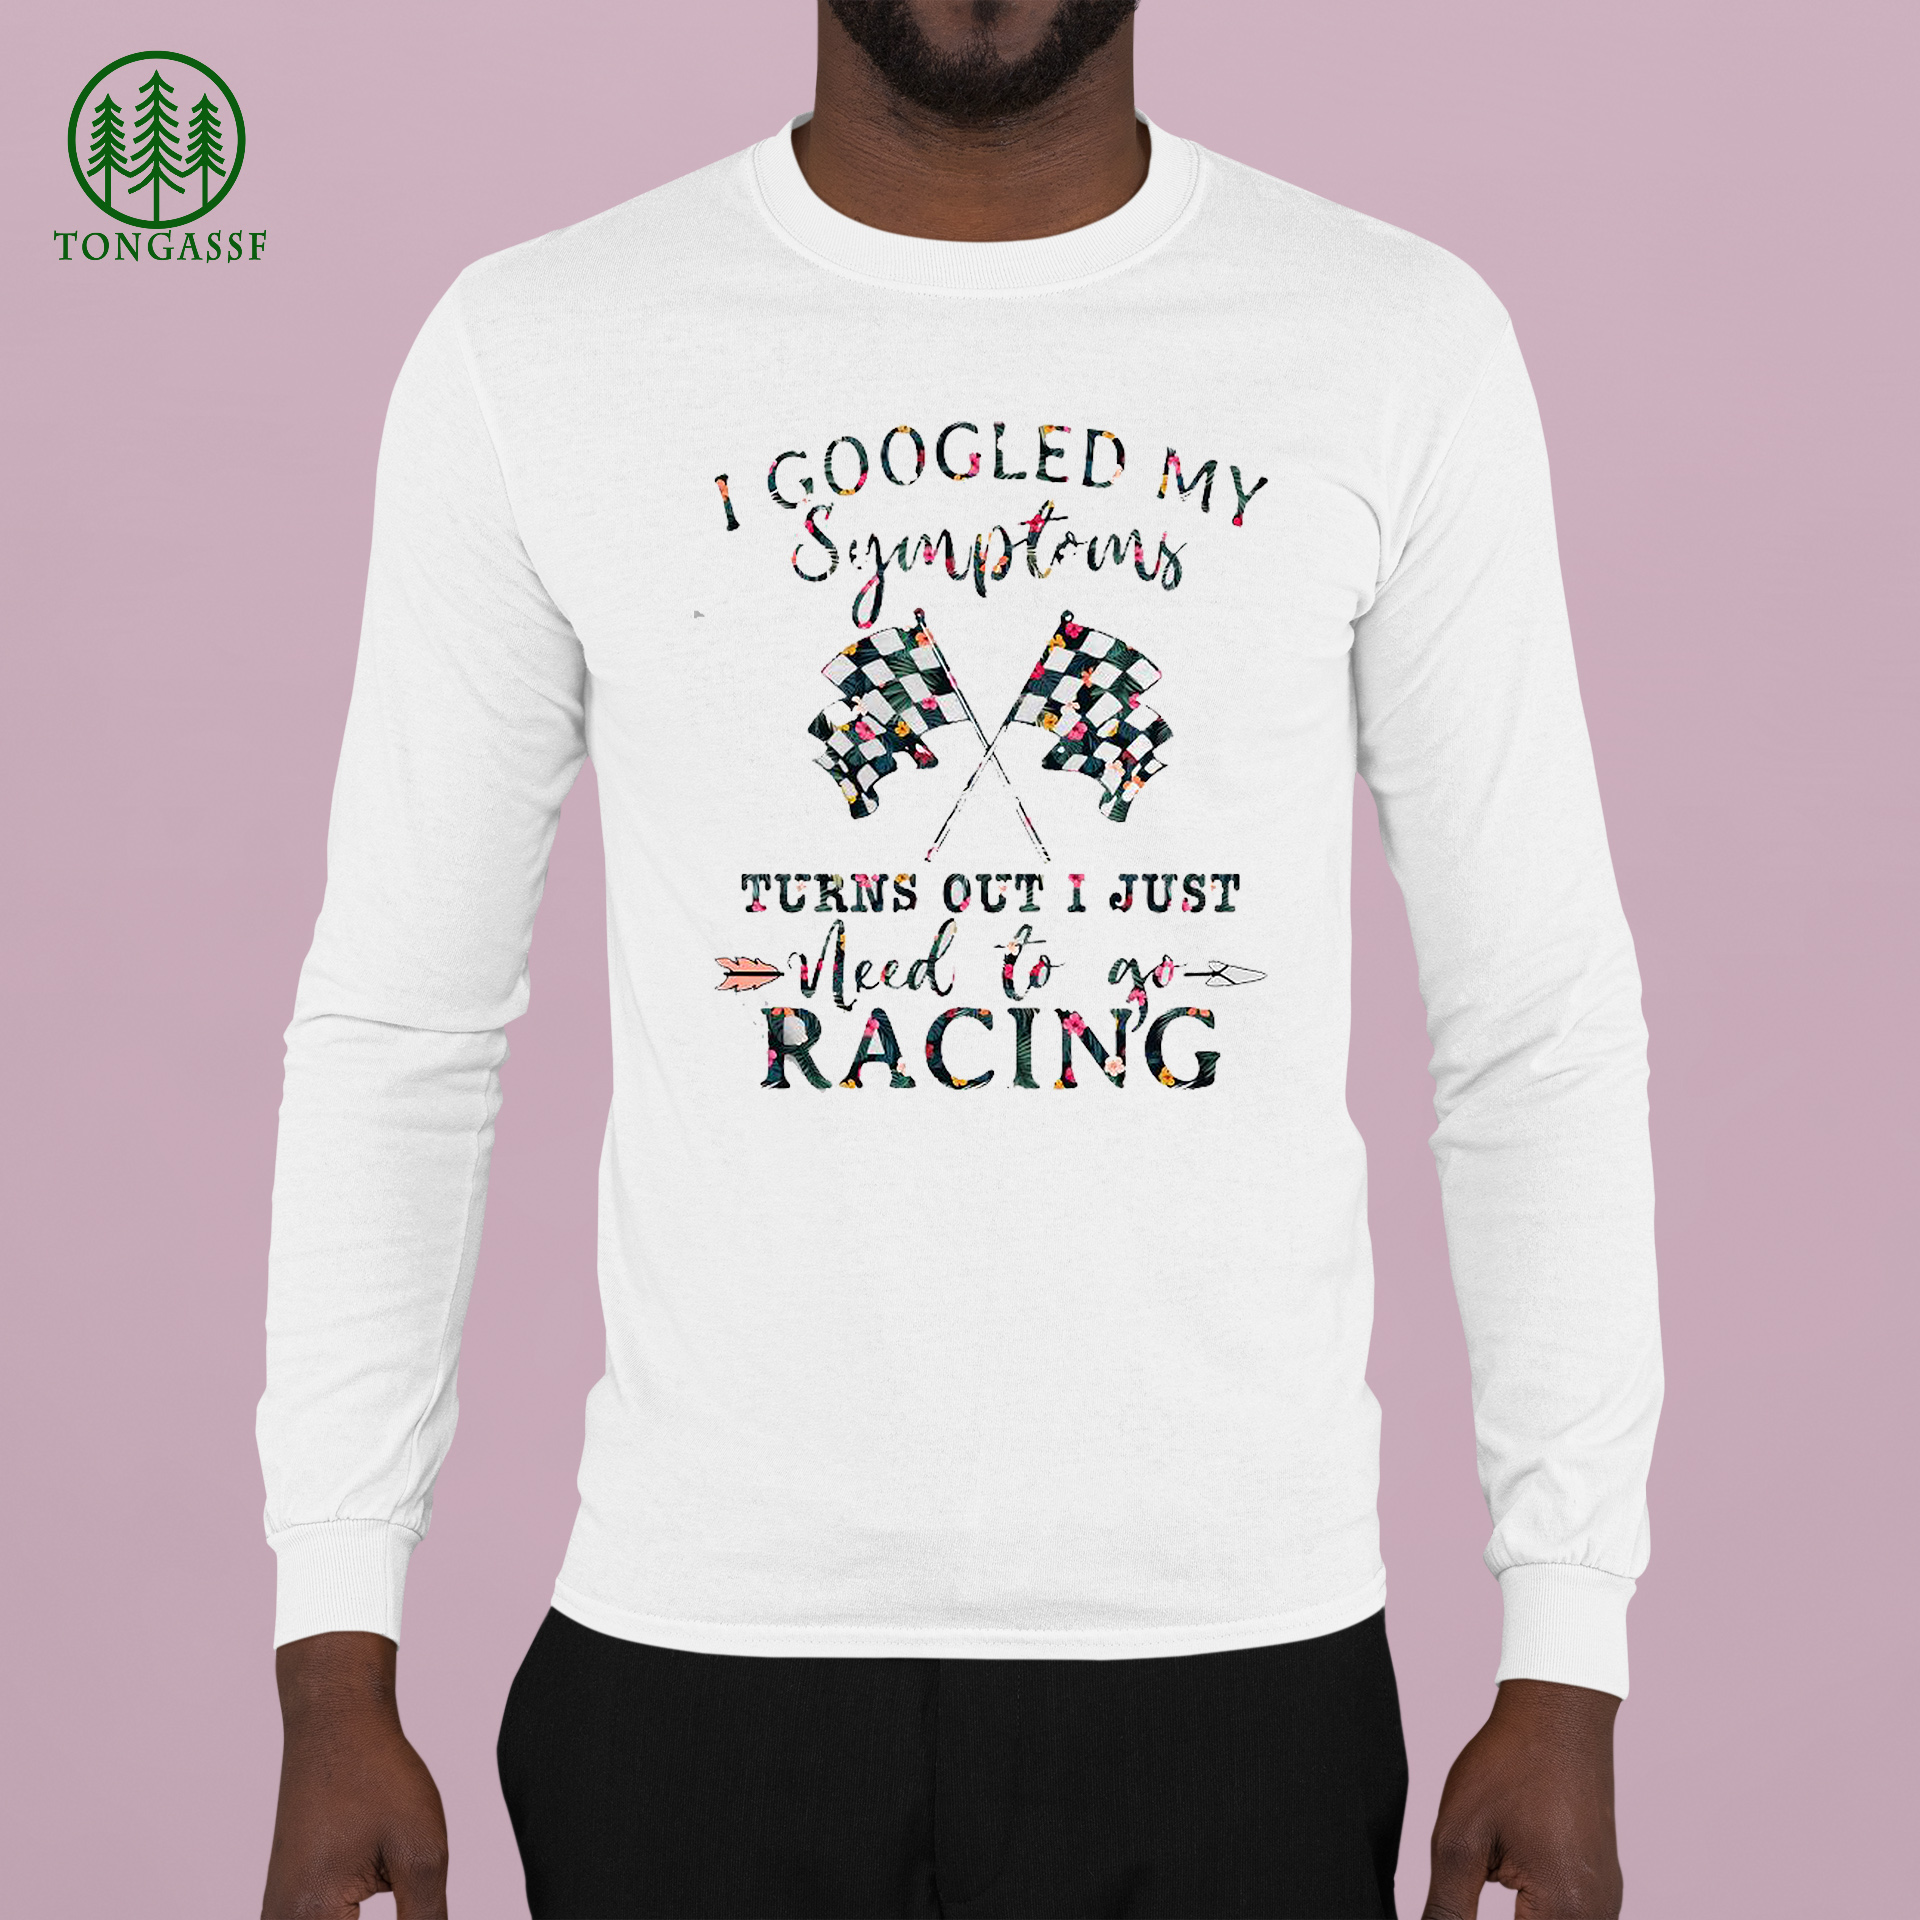 I GOOGLED MY SYMPTOMS TURNS OUT I JUST NEED TO GO RACING FLOWER SHIRT